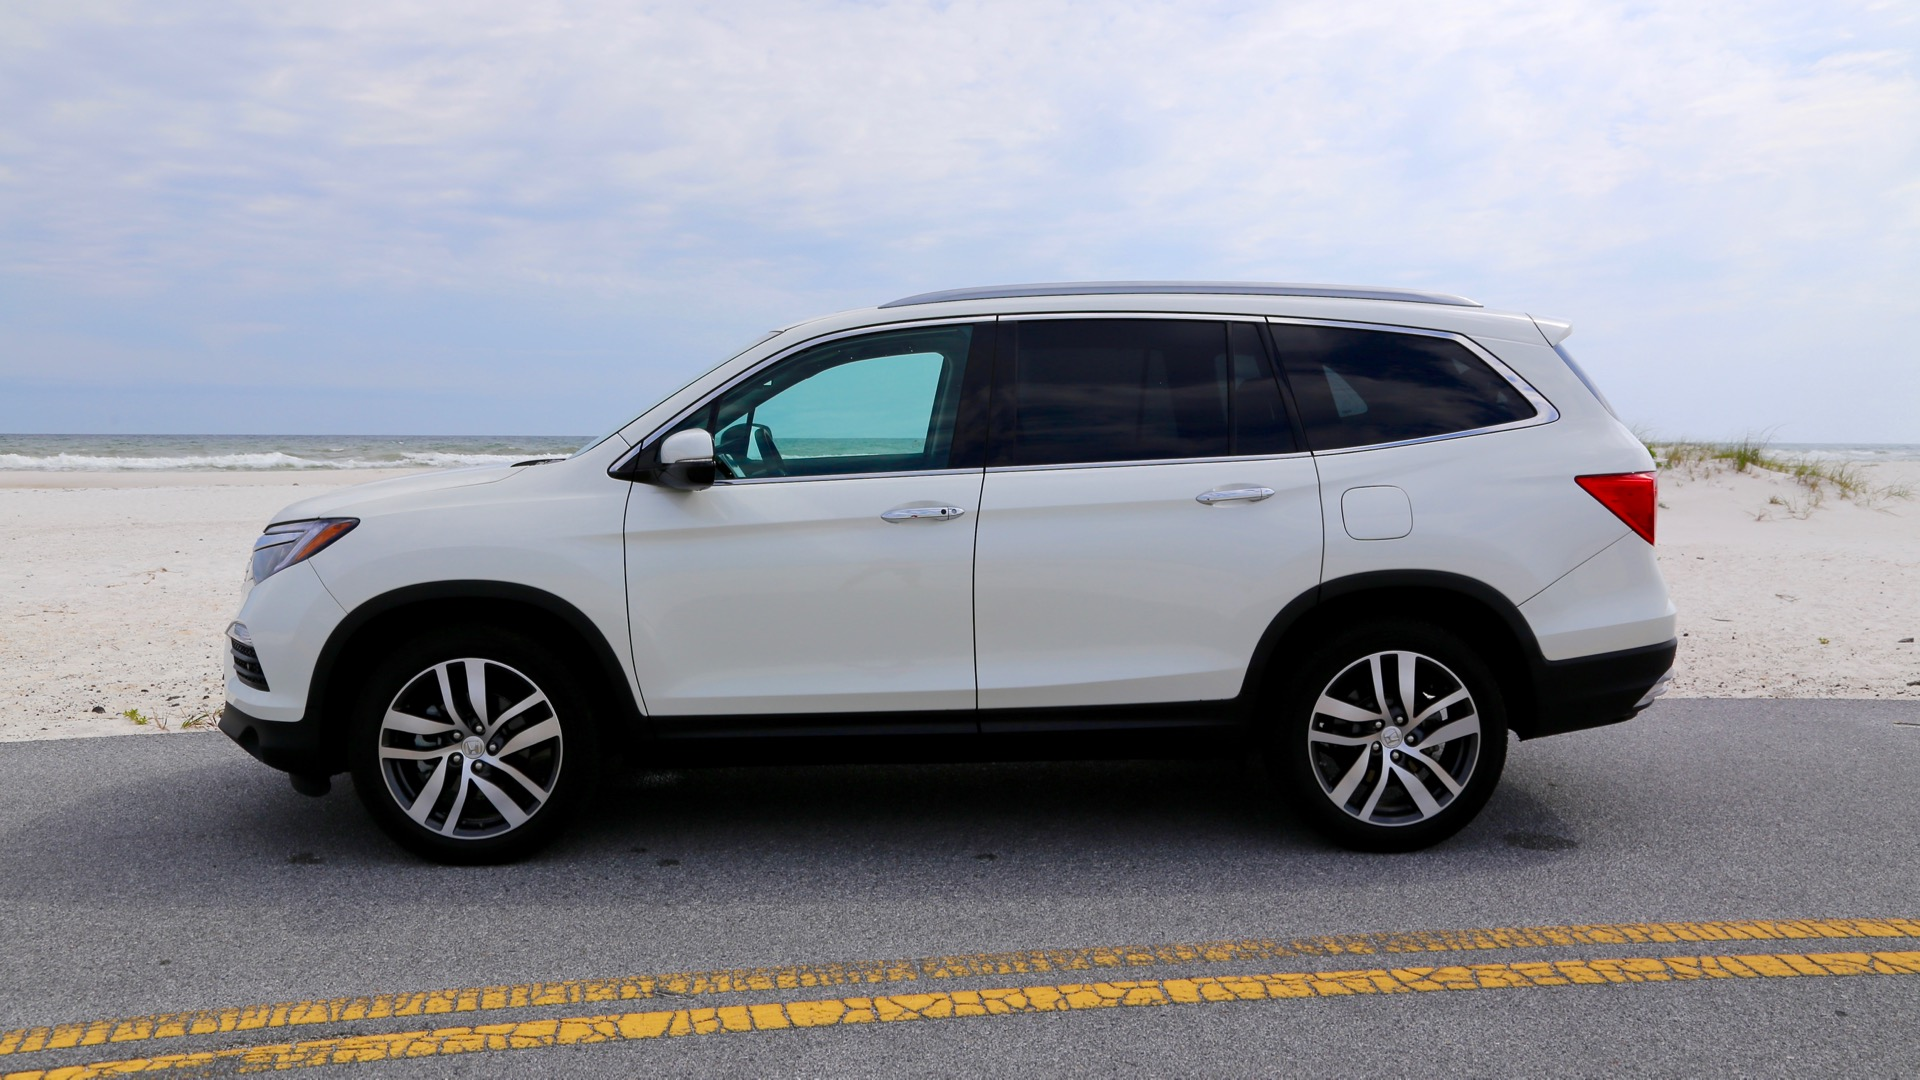 2016 Honda Pilot Long Term Road Test Which Accessories Are Worth The Price